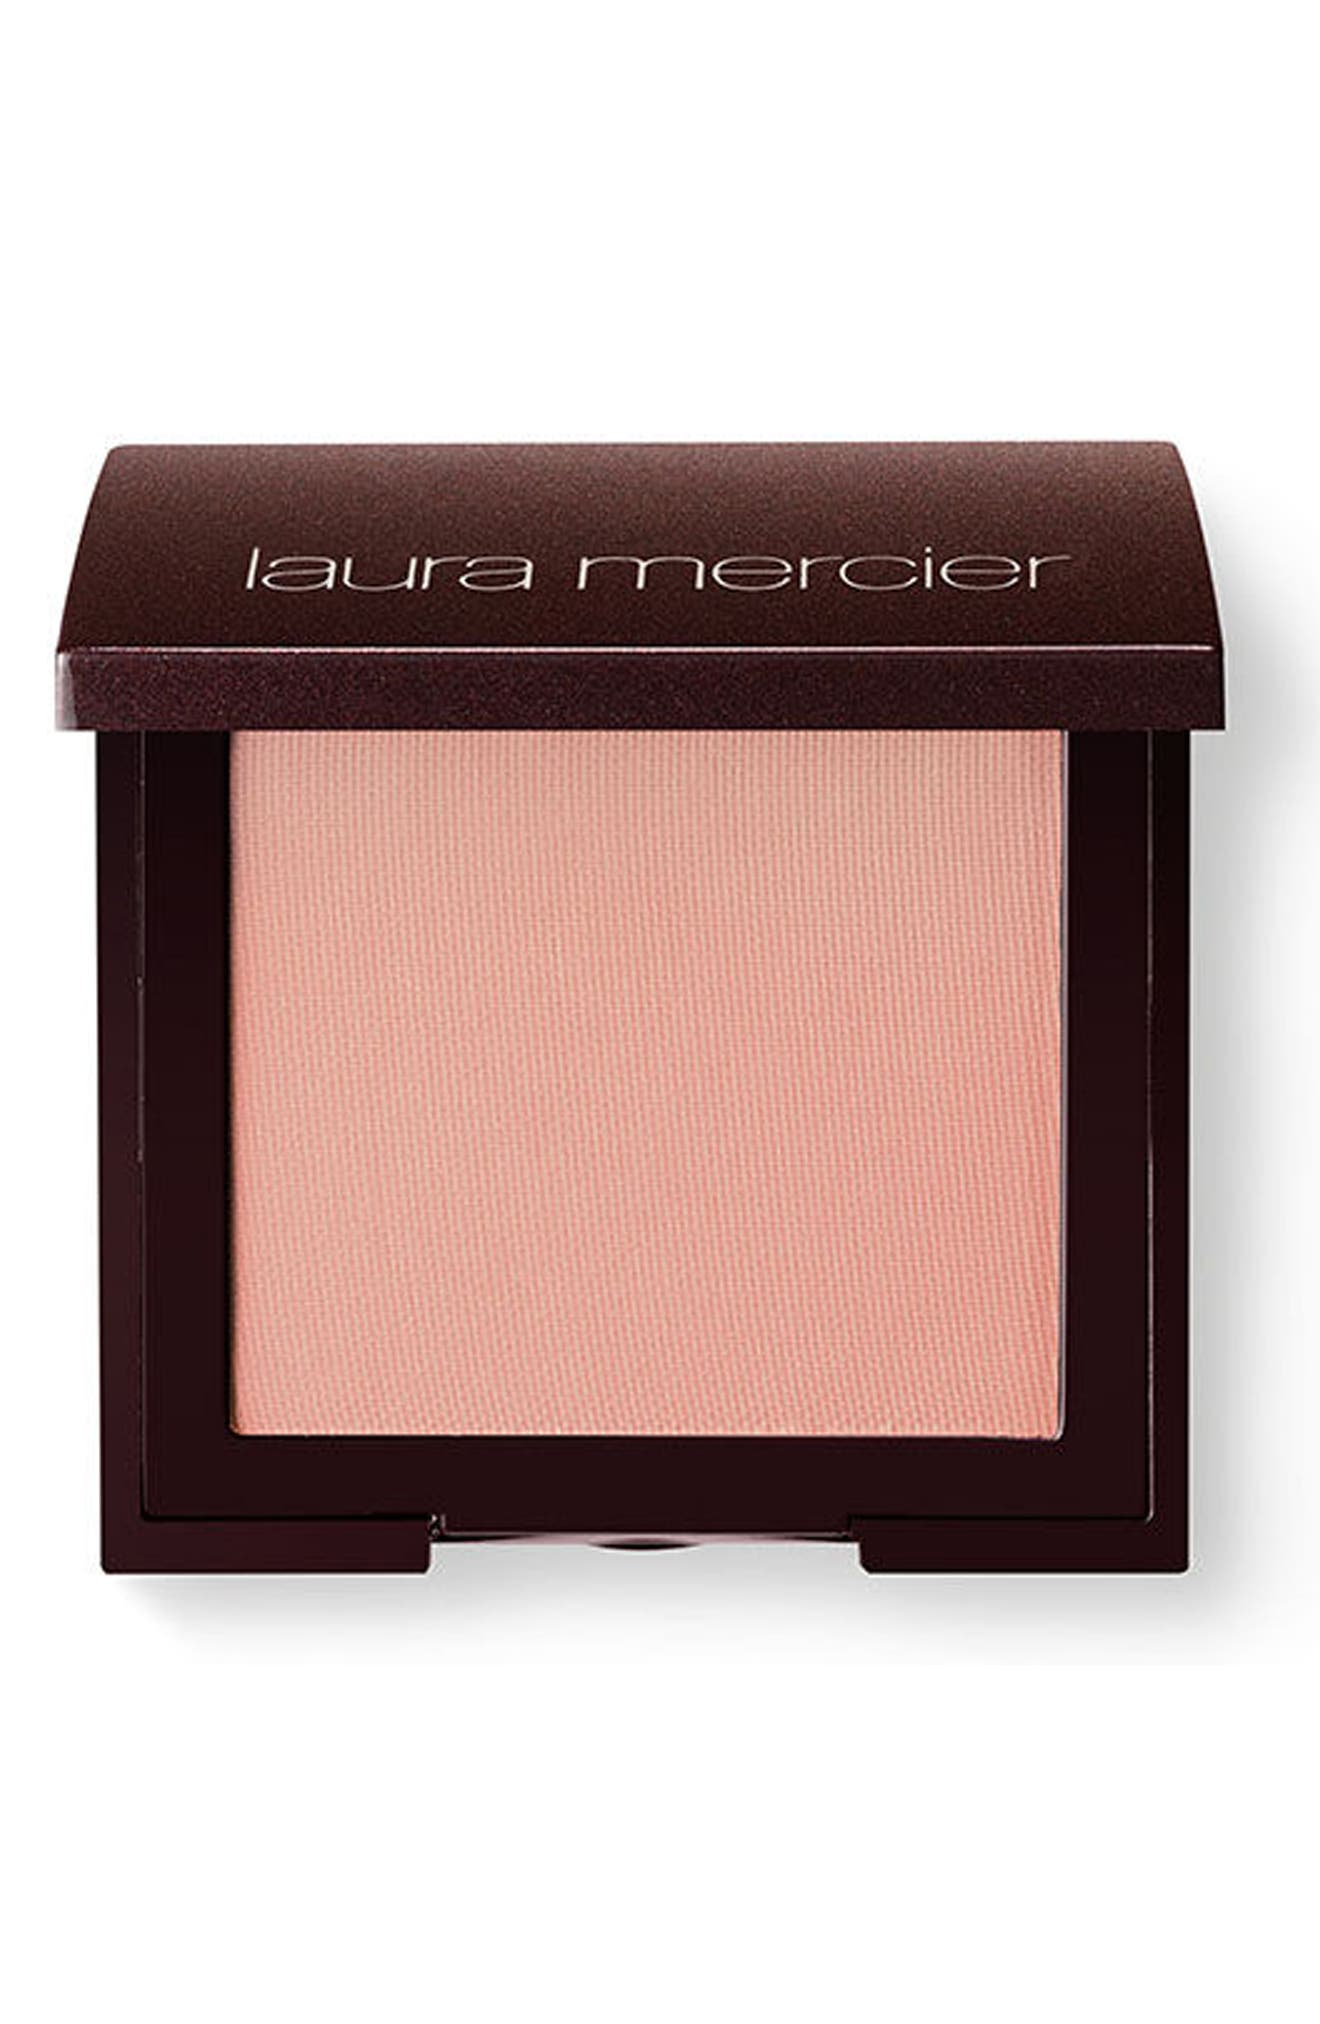 Main Image - Laura Mercier 'Second Skin' Cheek Color